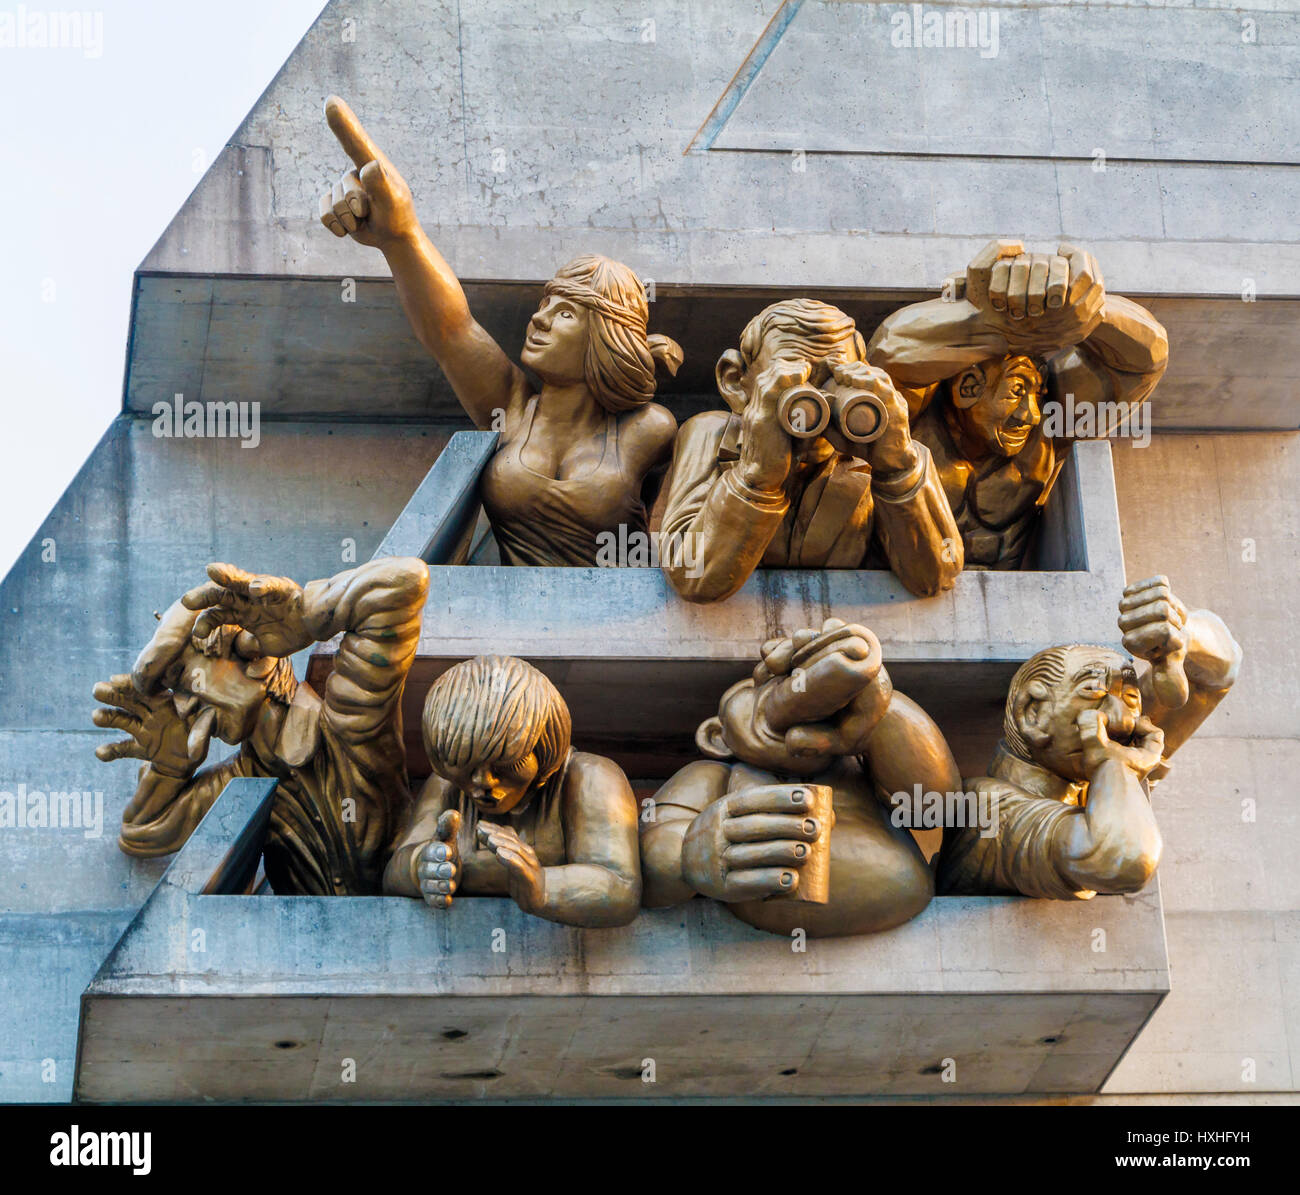 Michael Snow's sculpted figures, The Audience, on the outside of the Rogers Centre, Toronto, Ontario, Canada. - Stock Image